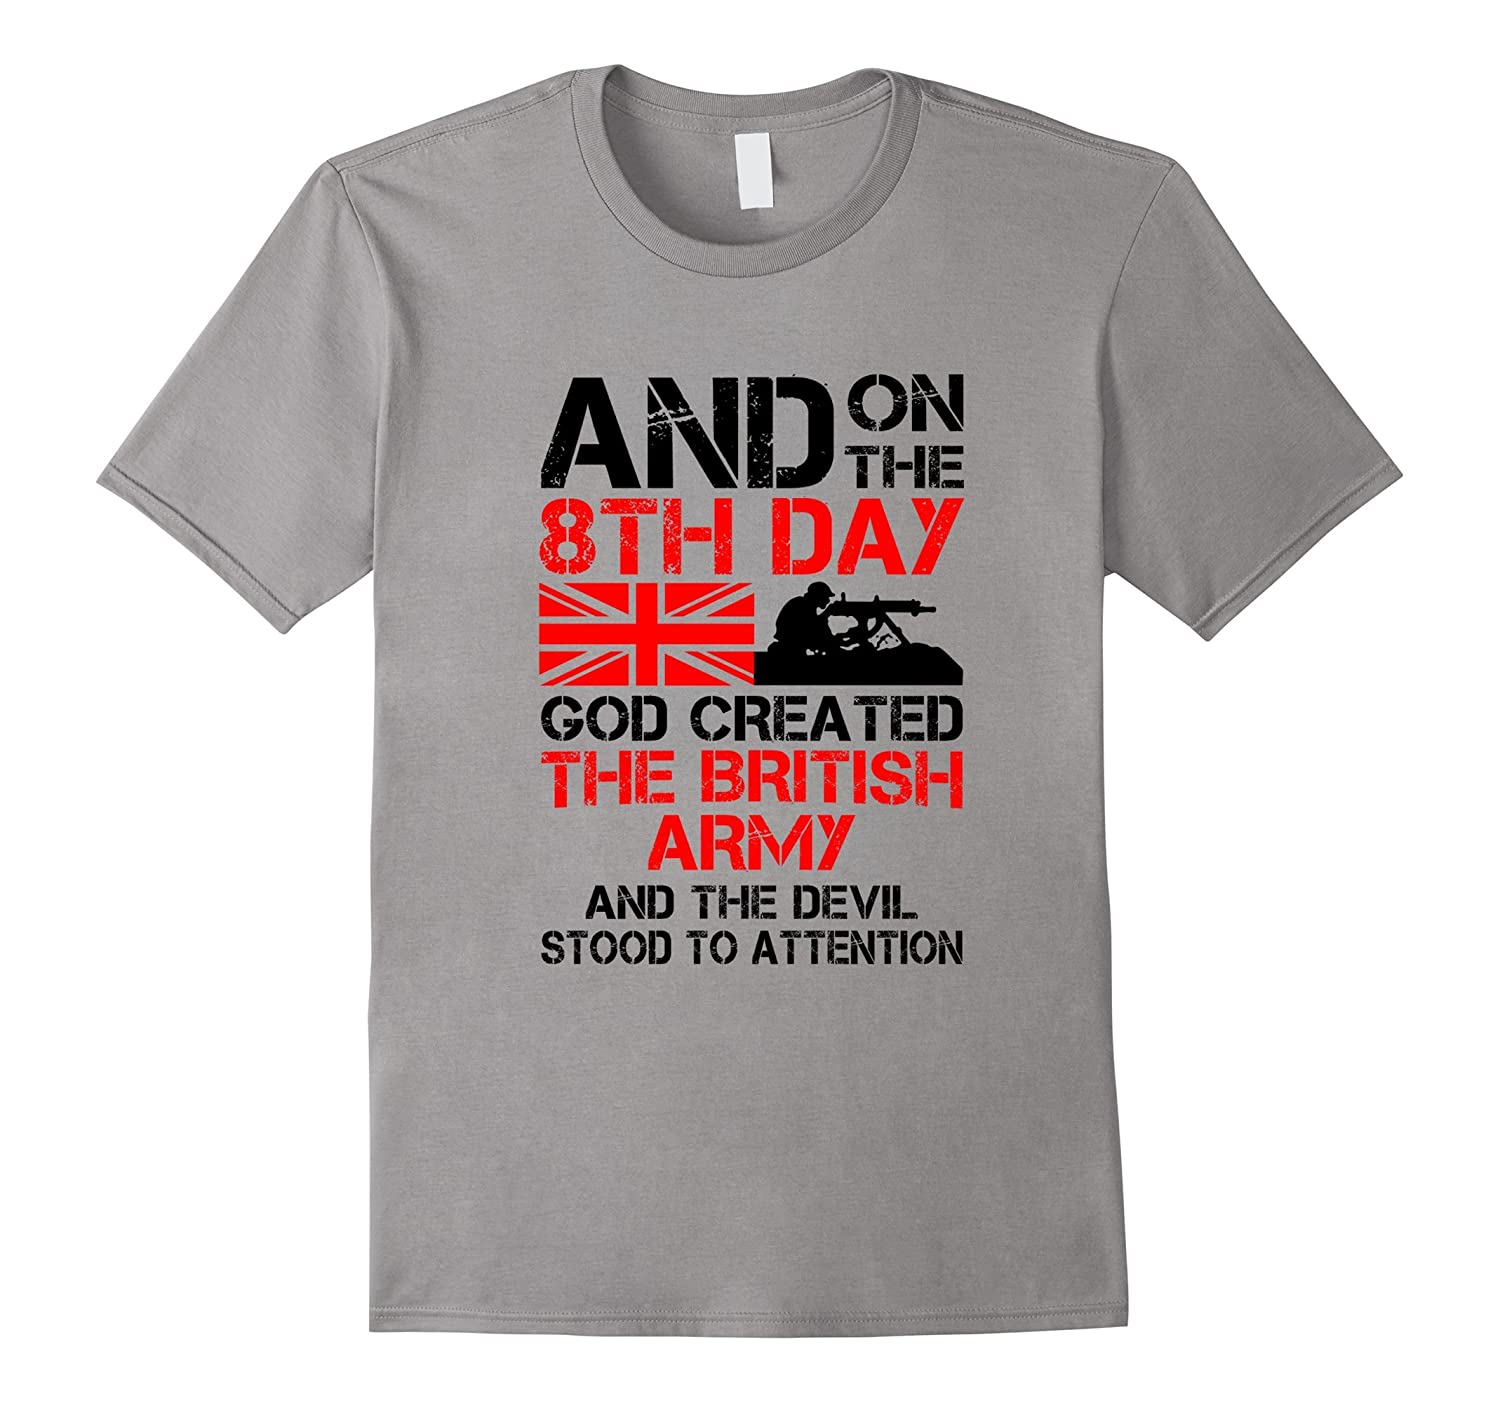 The british army T-Shirt, Veteran T-Shirt, Army T-Shirt